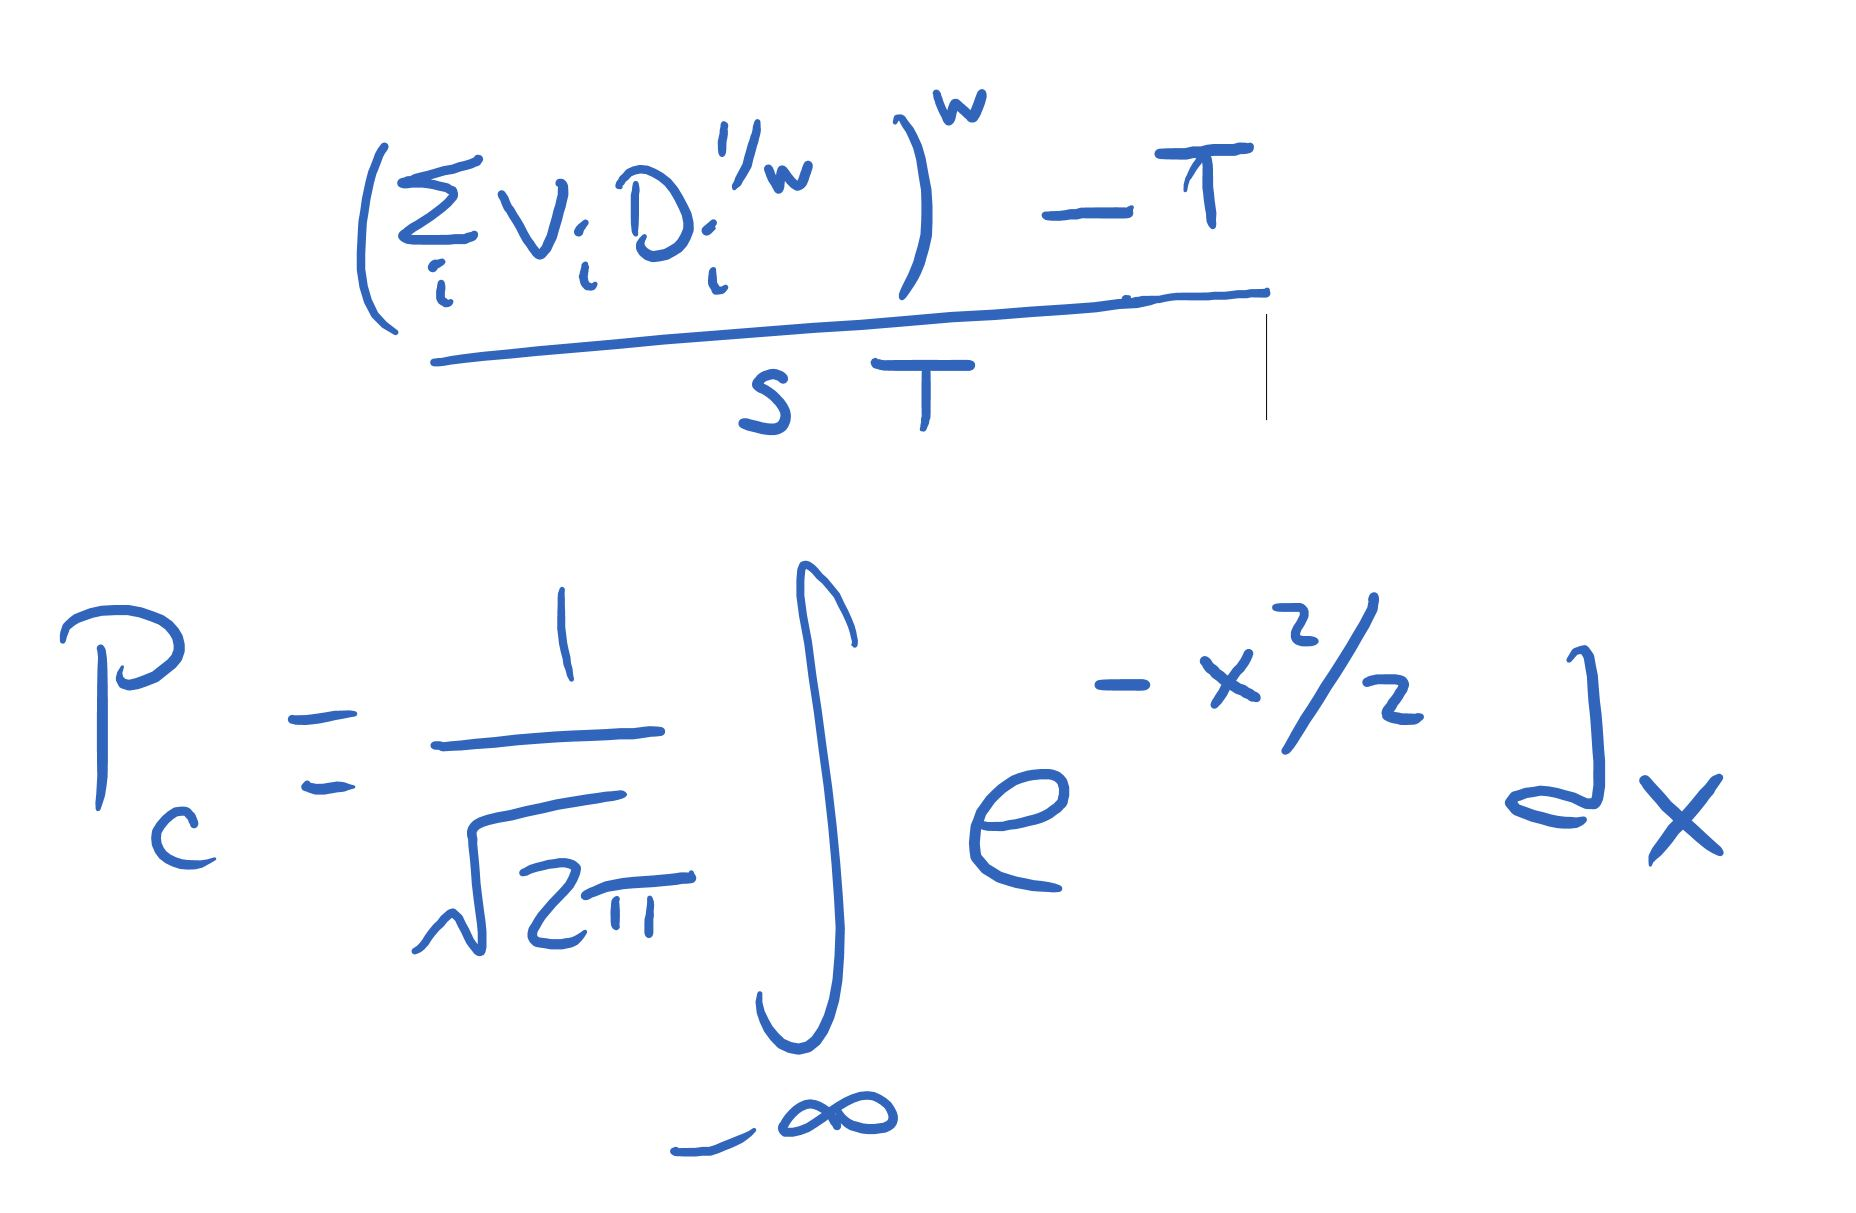 How Do We Differentiate Functions Involving Integrals And Summations